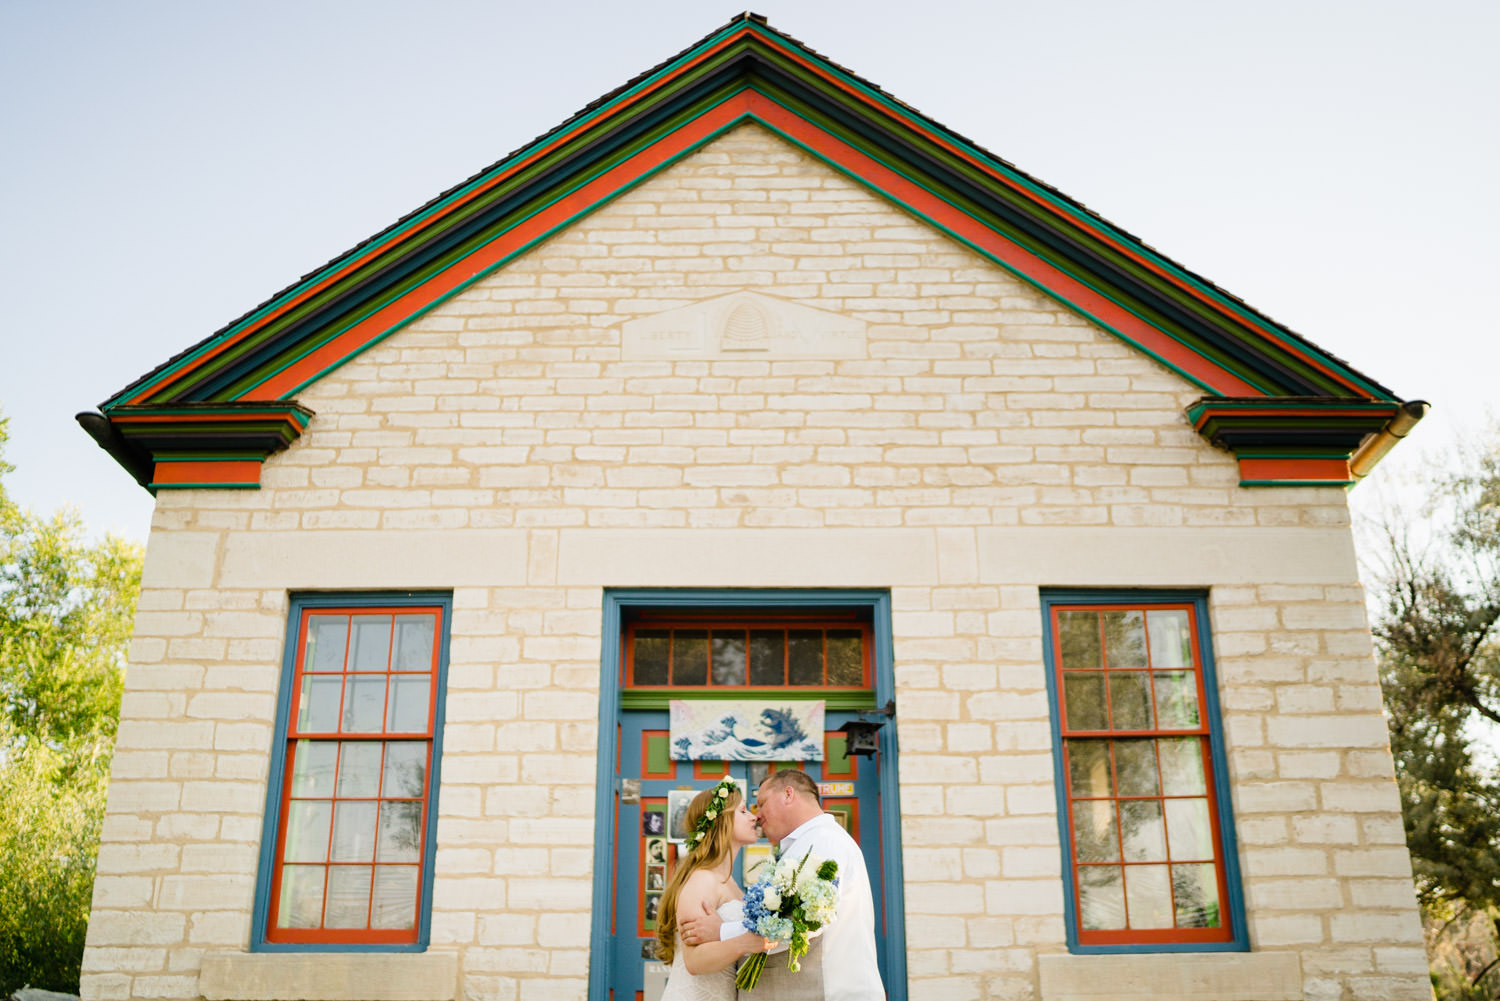 Spring Farm wedding portrait in front of historical building in Spring City photo